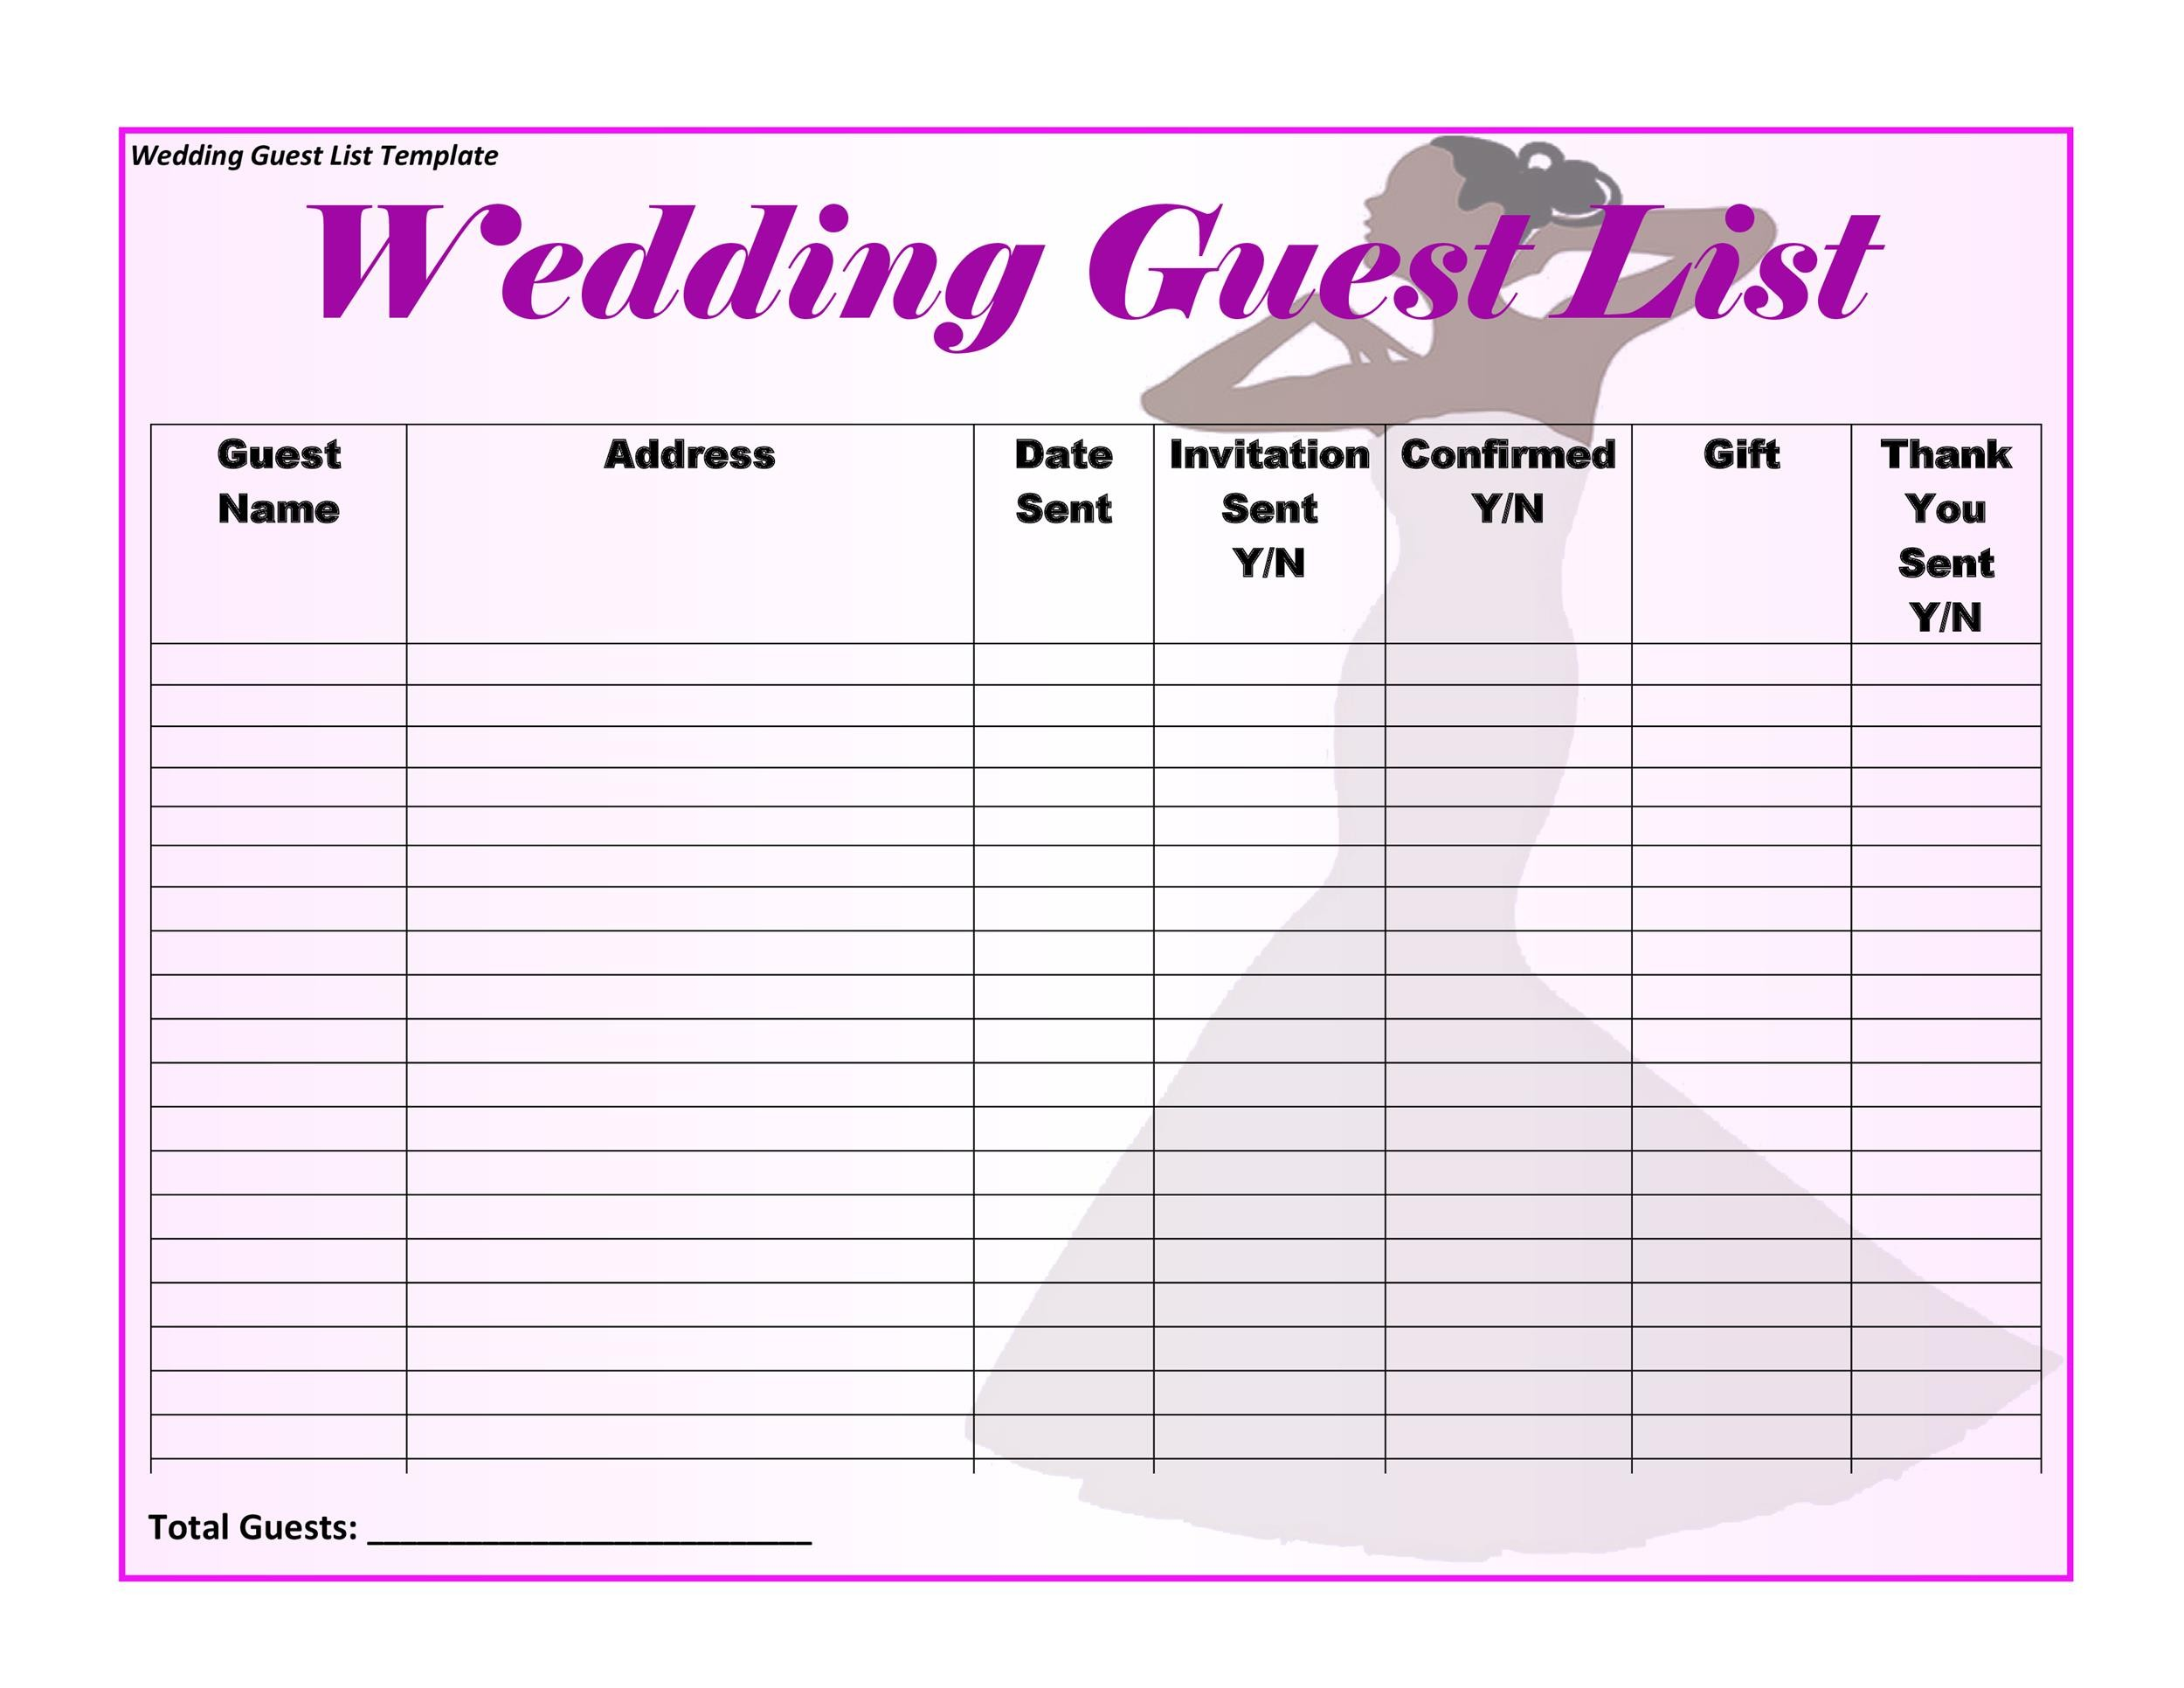 Wedding Guest List & Itinerary Templates